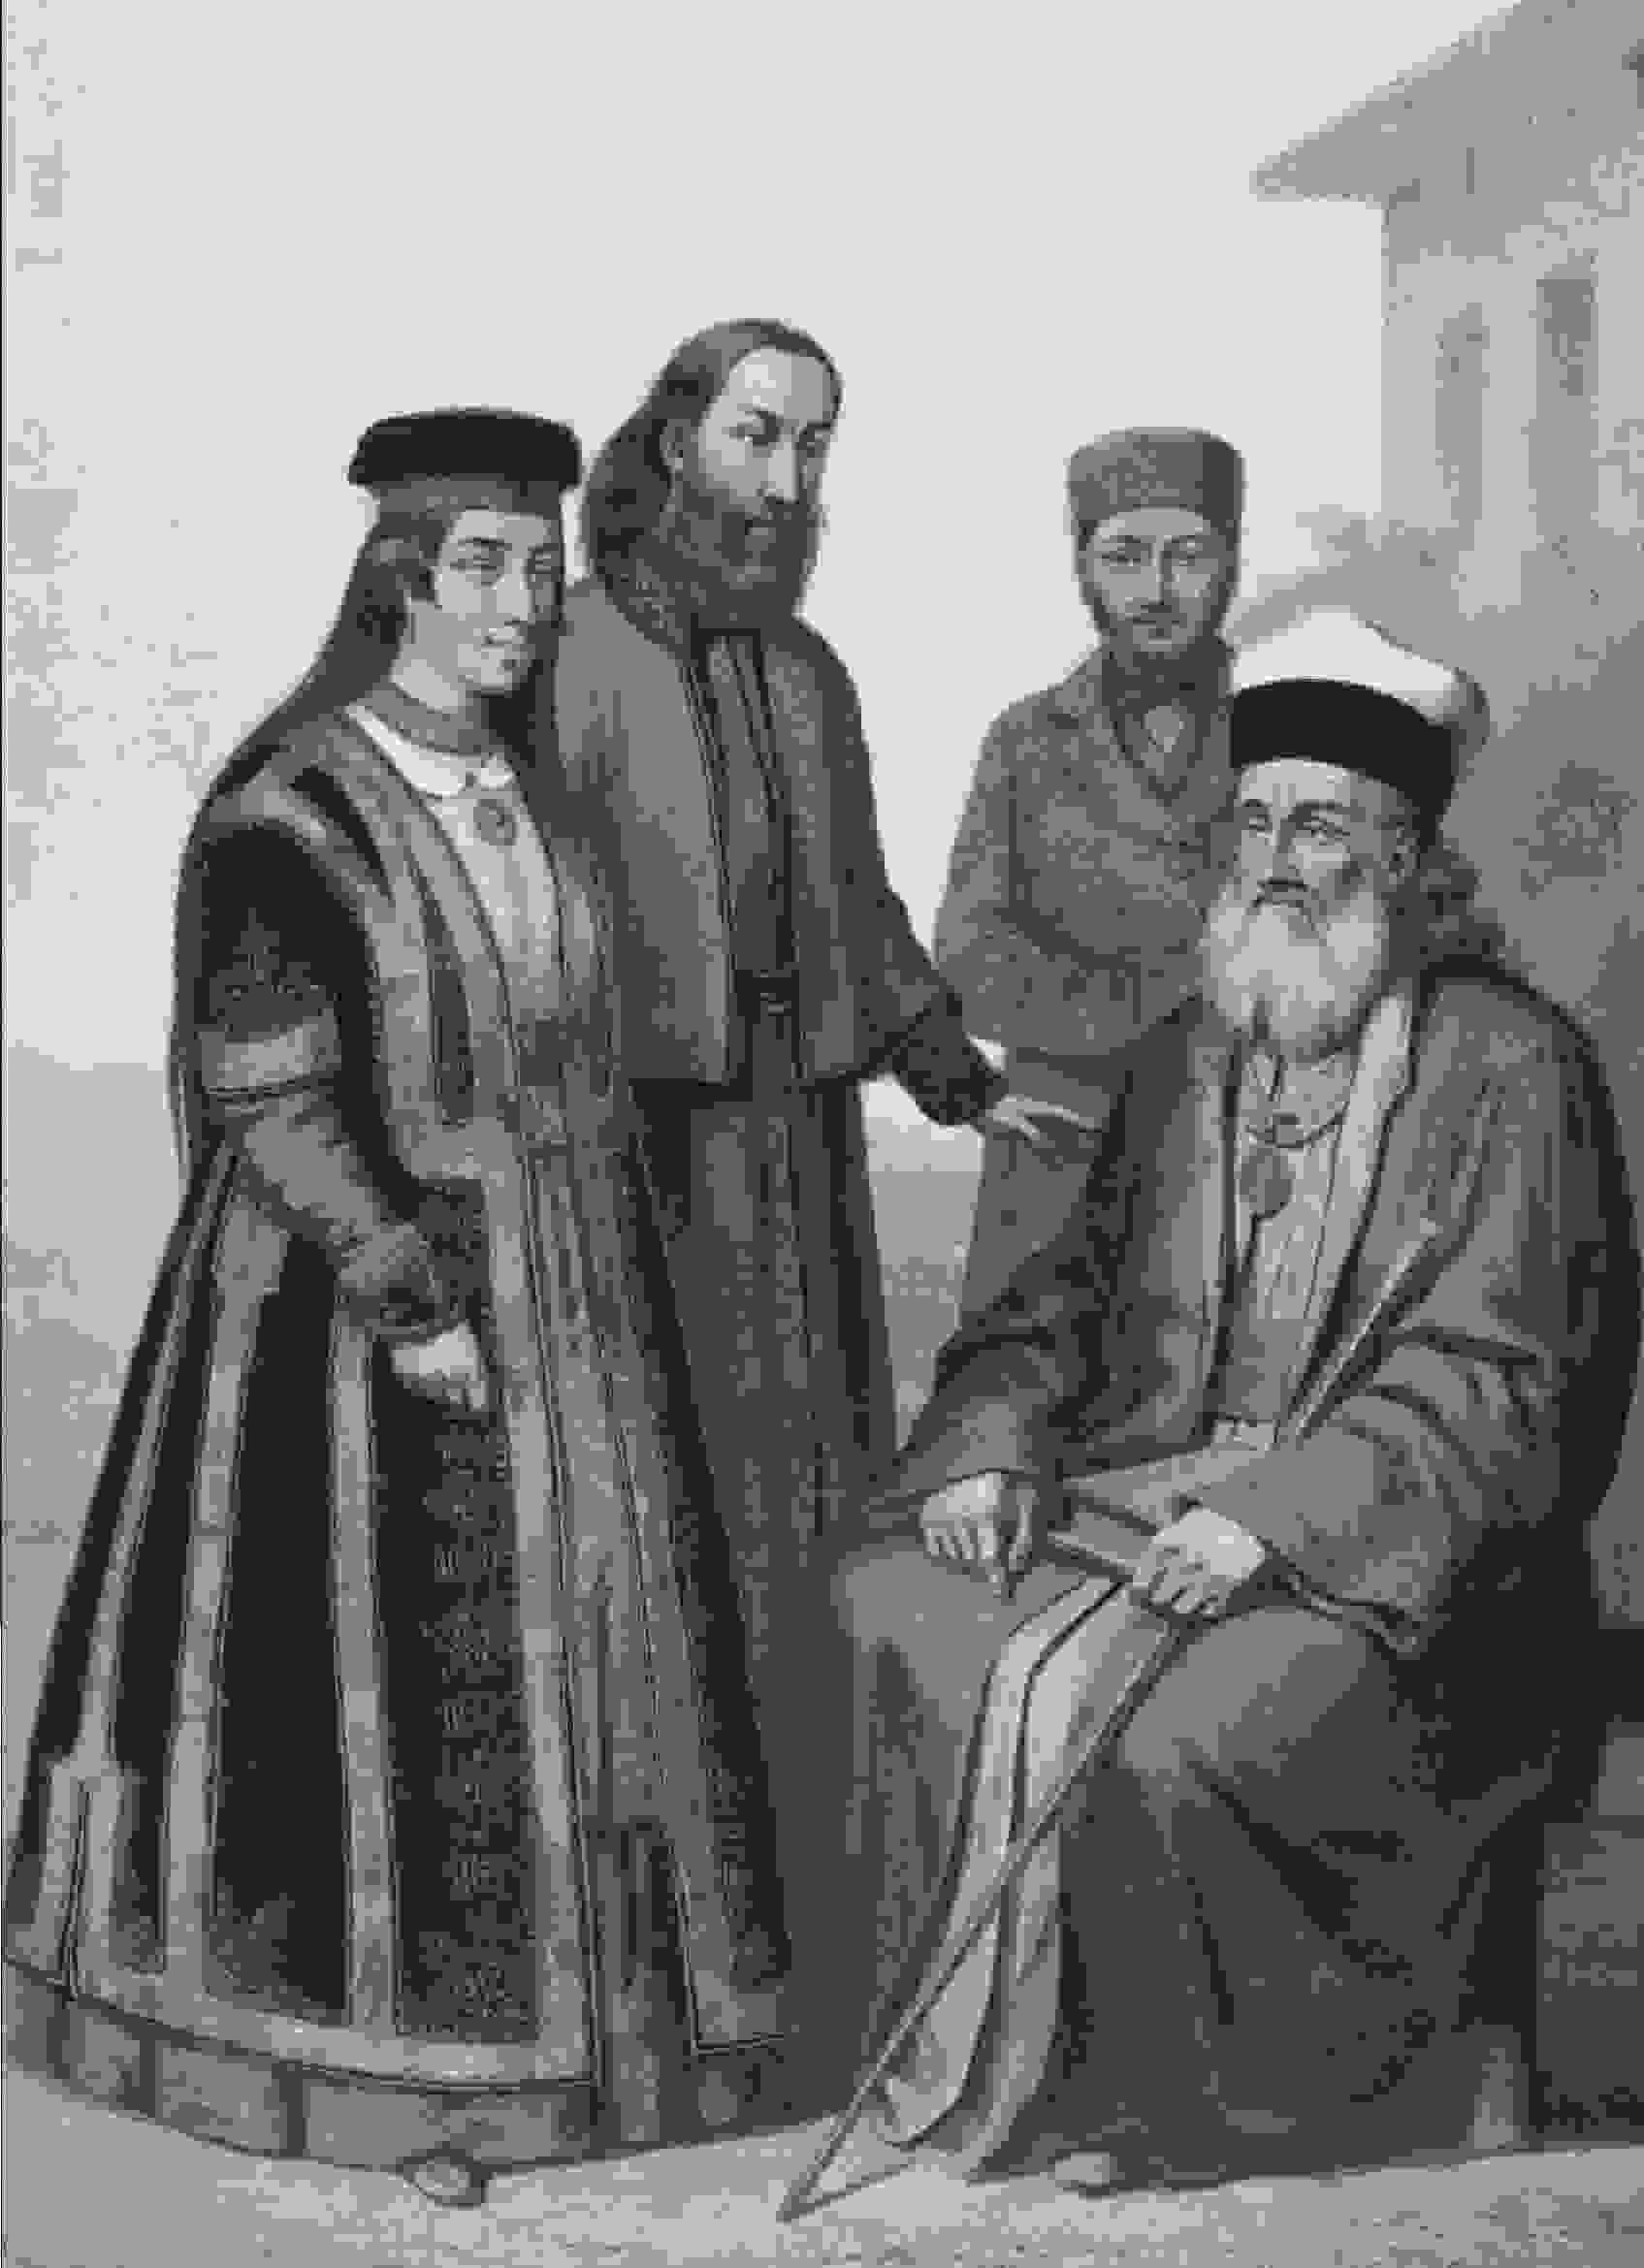 Jewish people and their customs in Russia 19th century